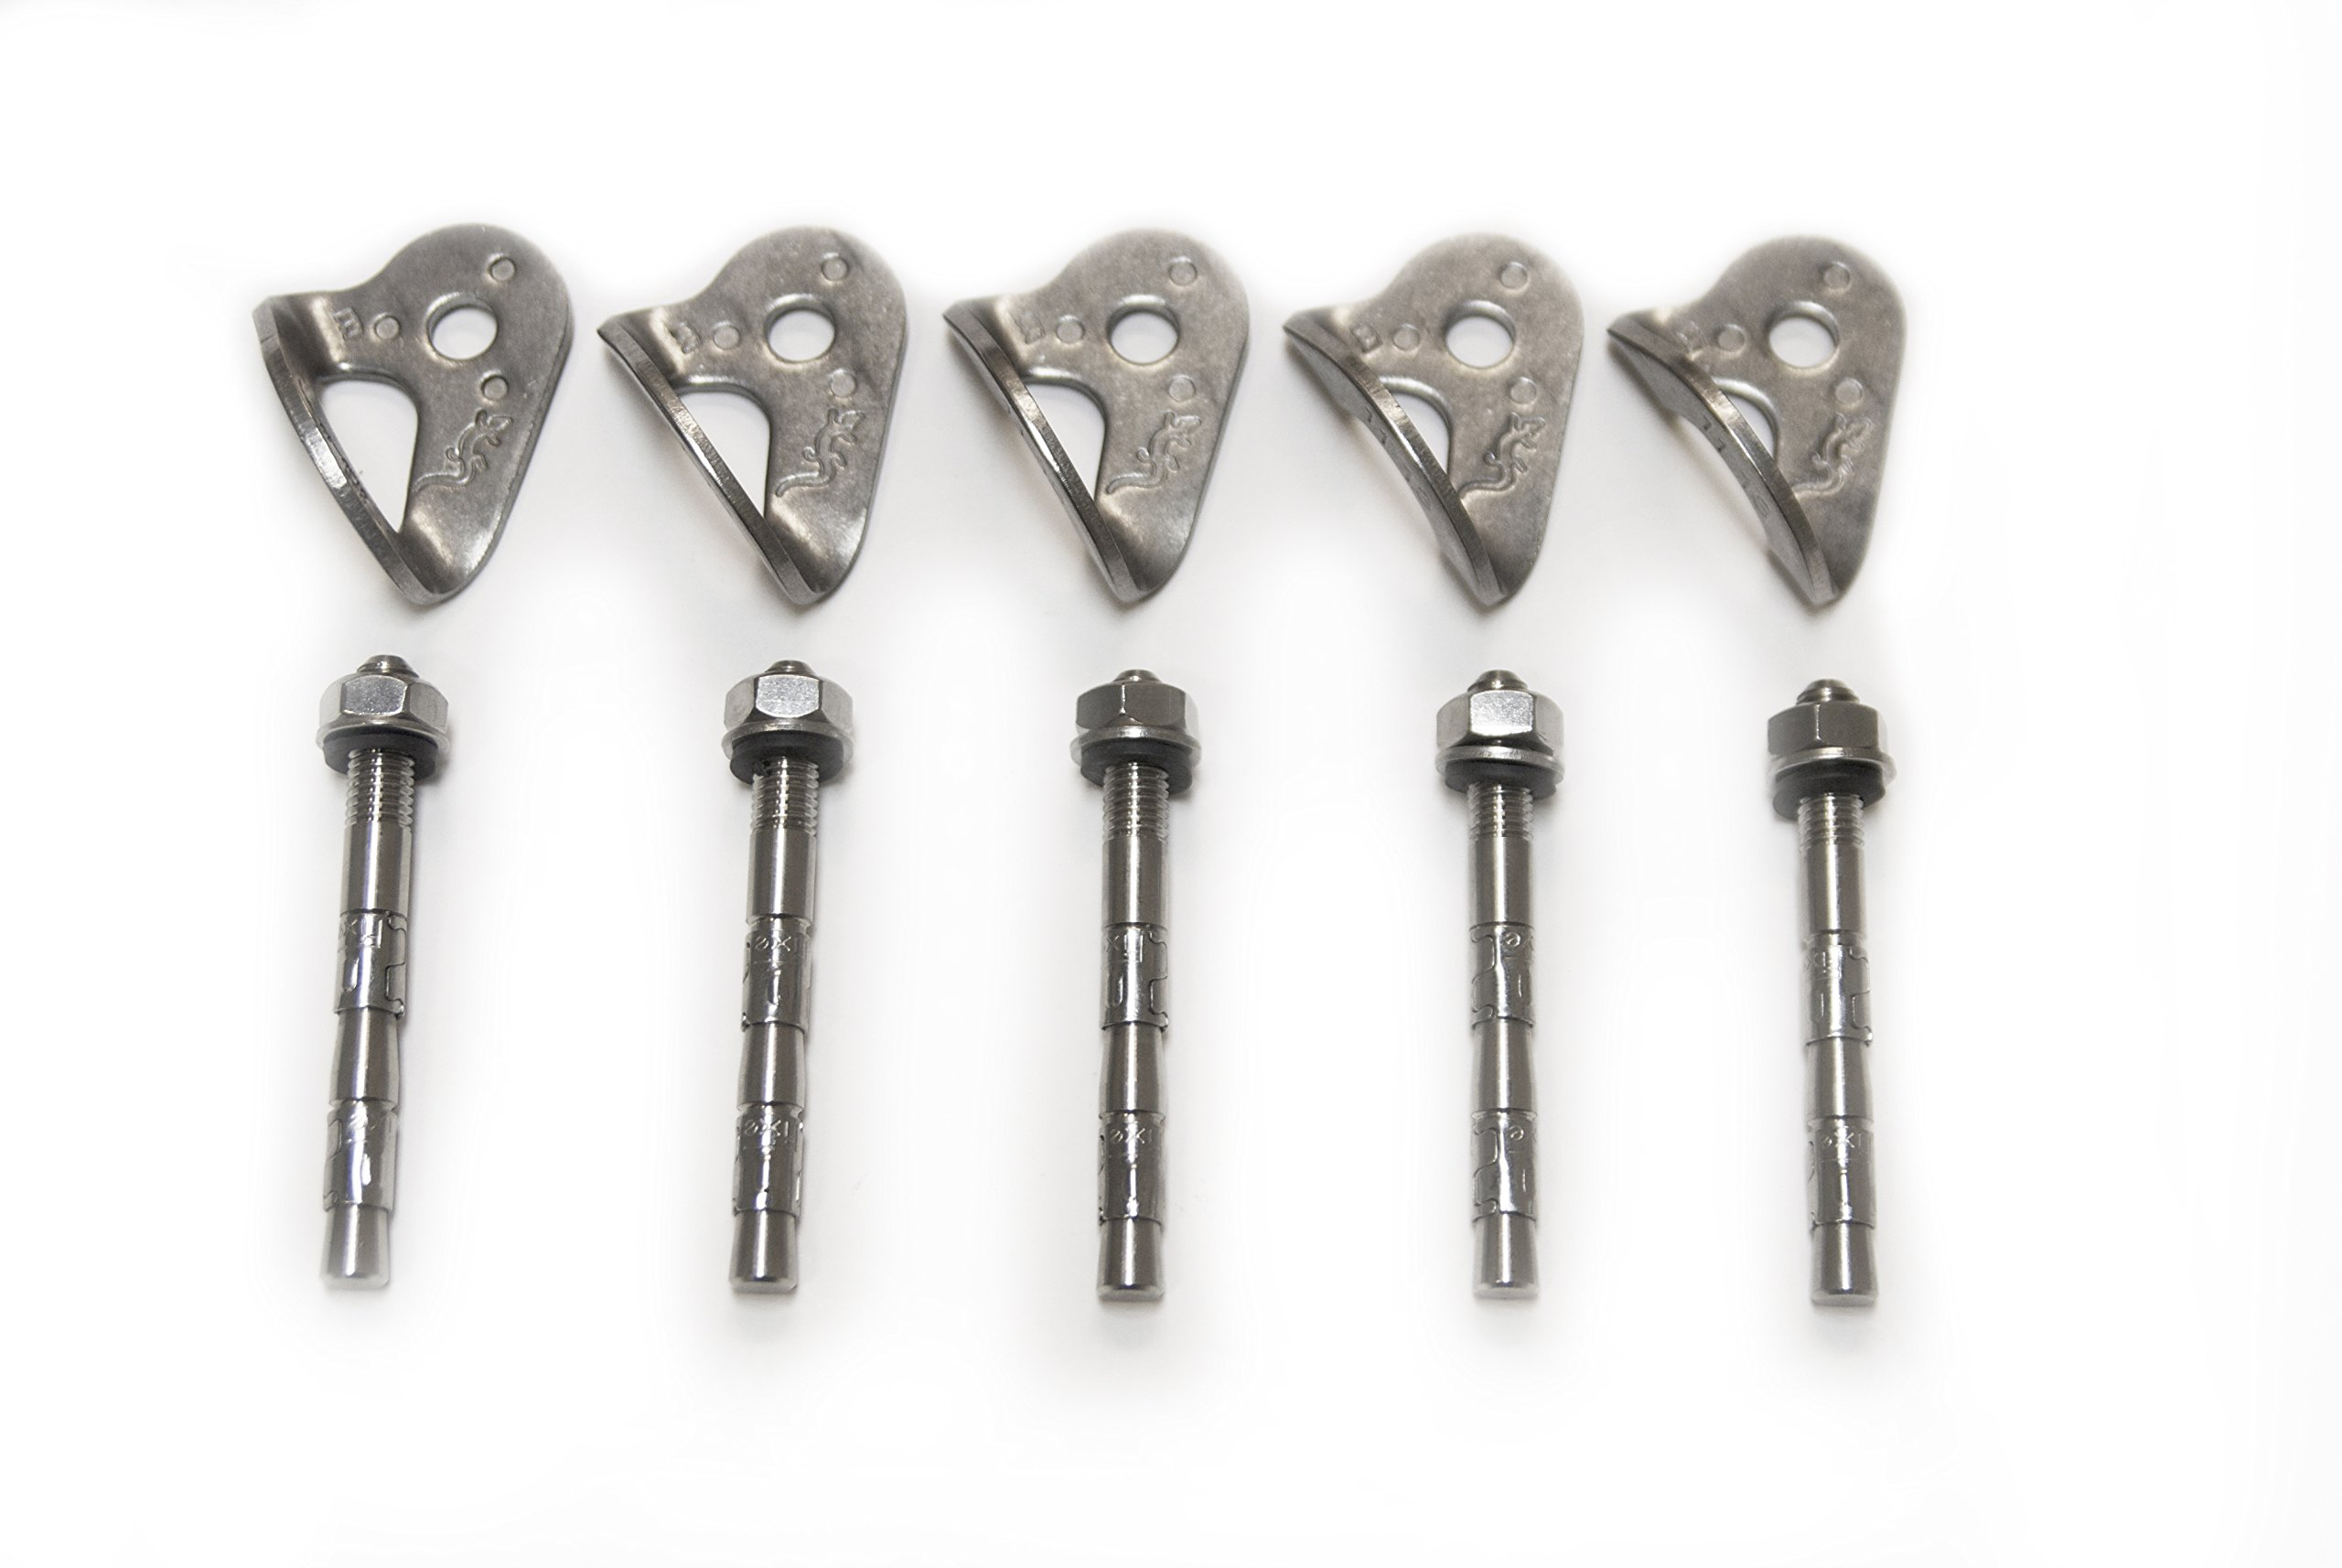 Bolting Kit for Climbing | 5 Pack Double Wedge Bolts with Hangers